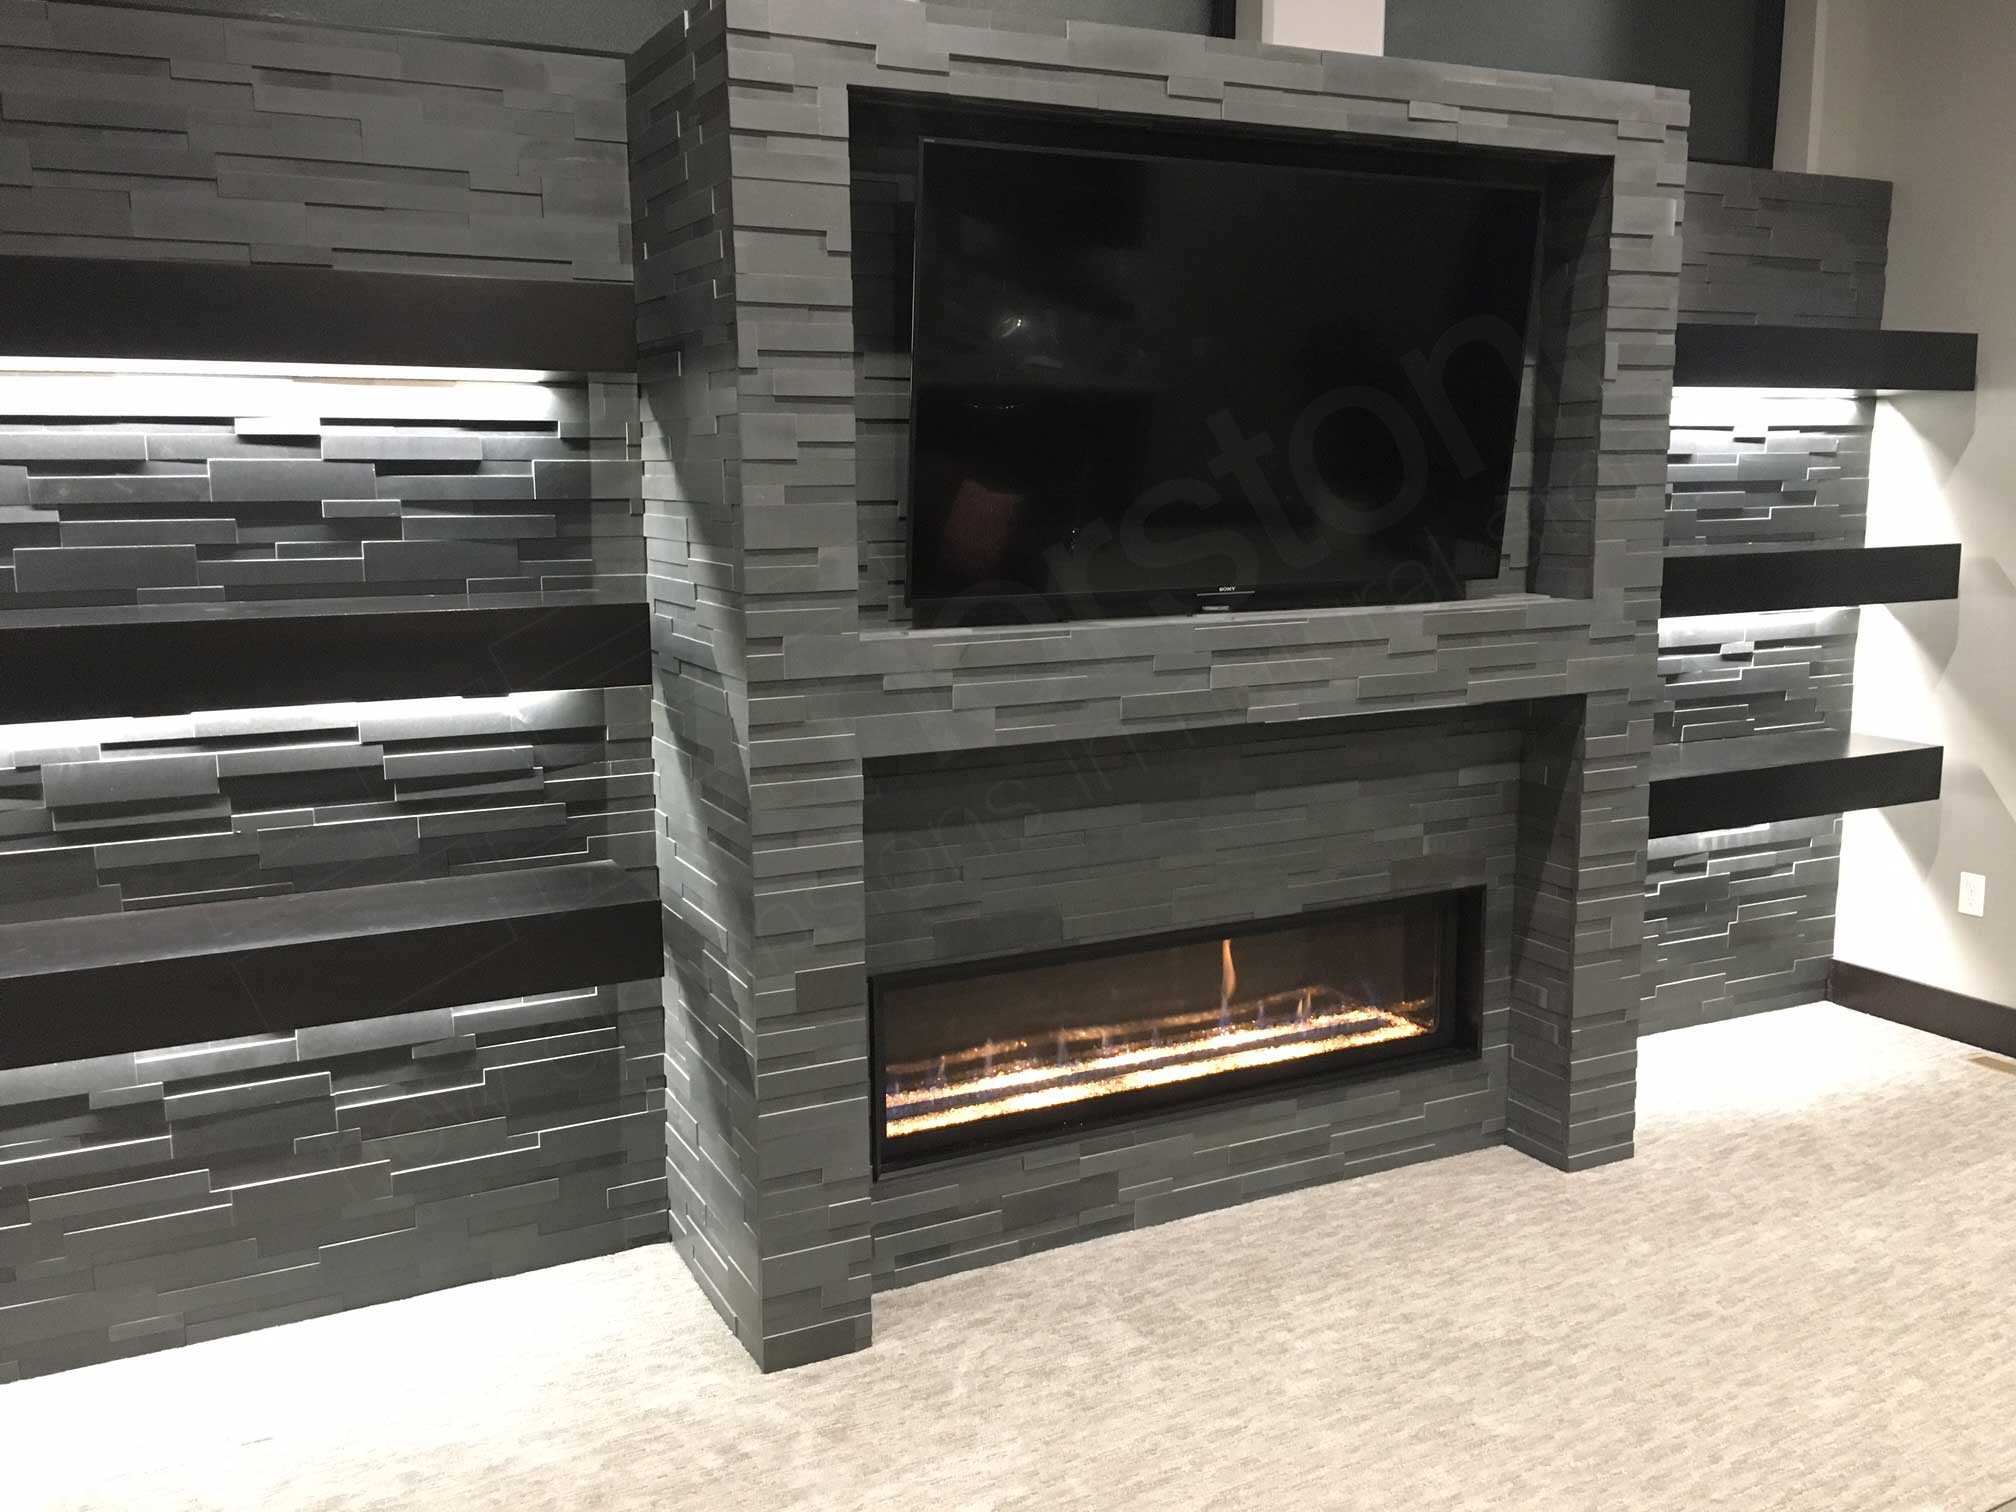 Gas fireplace and big screen tv recessed into a stone wall clad in grey basalt 3D ledge stone flanked on either side by floating shelves